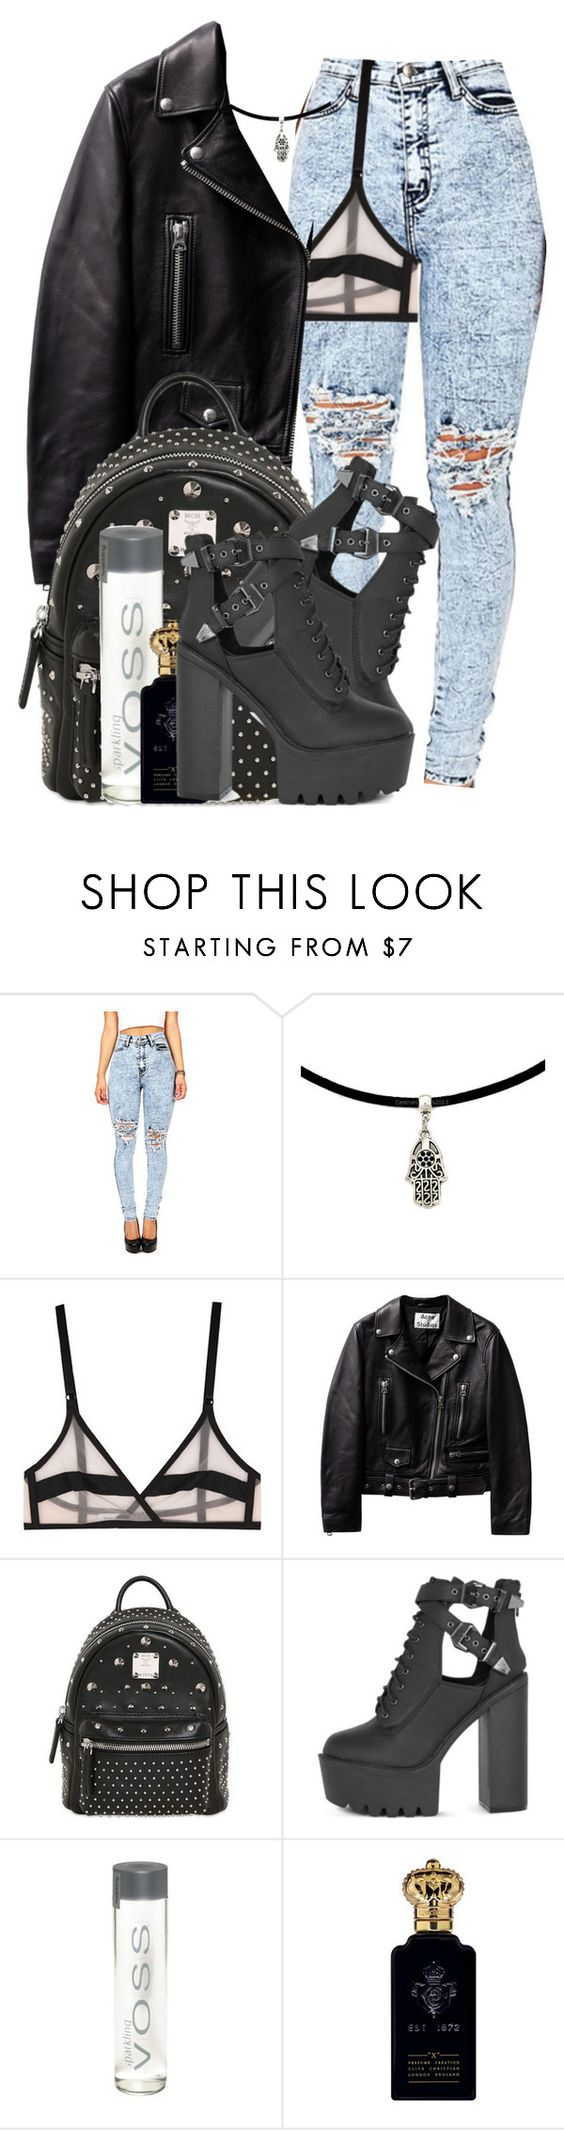 """Untitled #486"" by g-life ❤ liked on Polyvore featuring Yasmine eslami, MCM and Clive Christian"